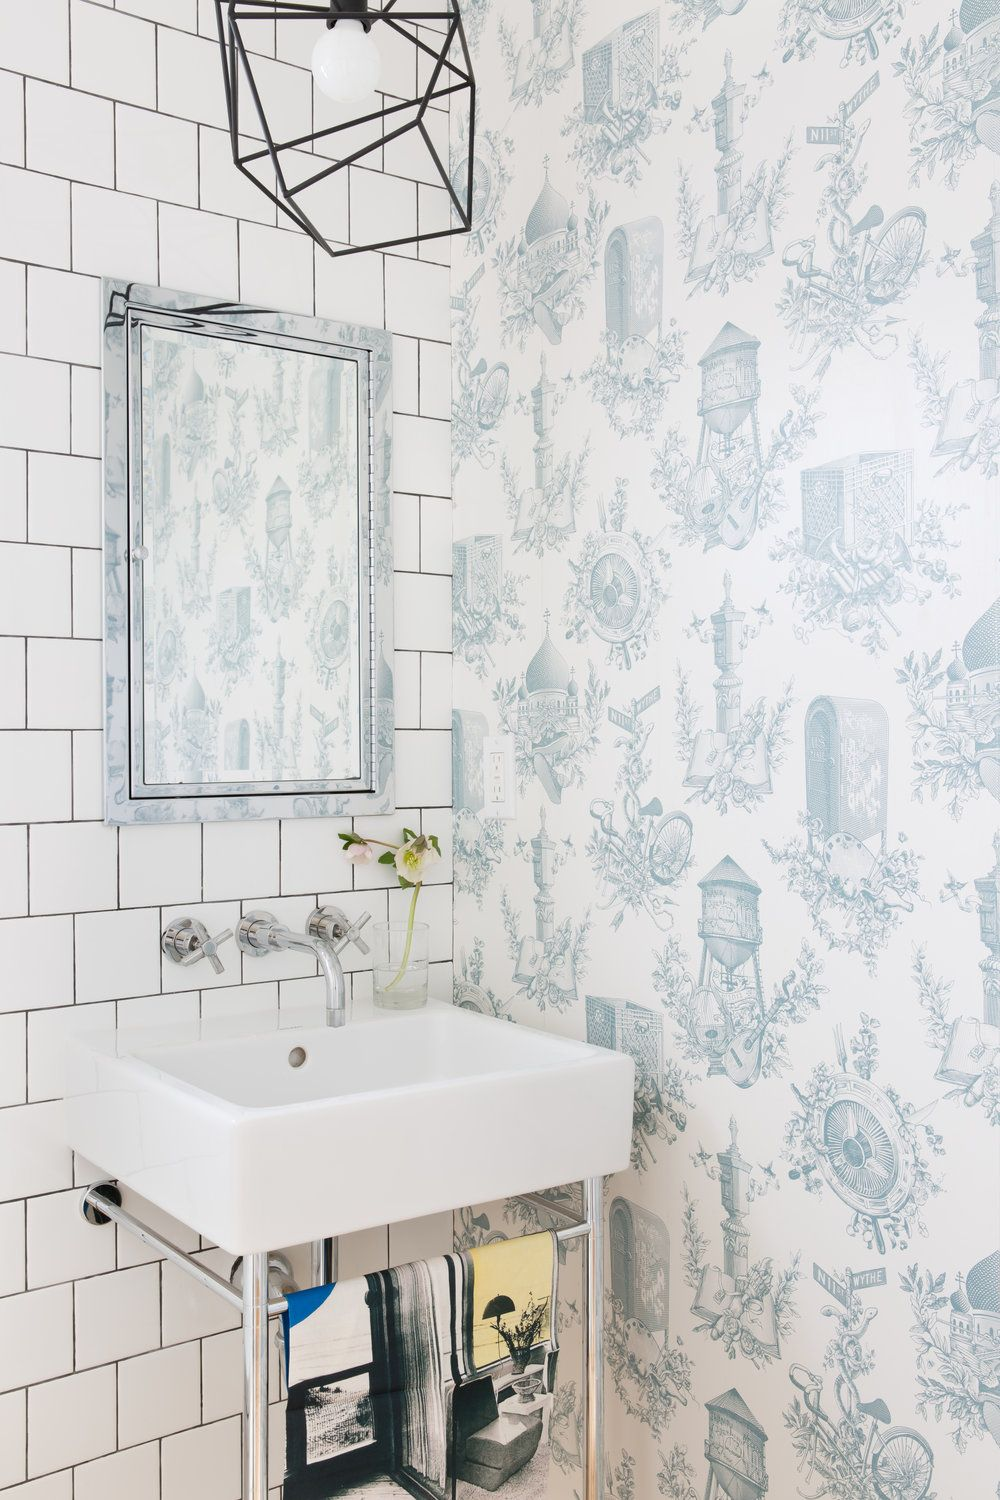 8 Bathroom Wallpaper Ideas That Will Inspire You to be Bold